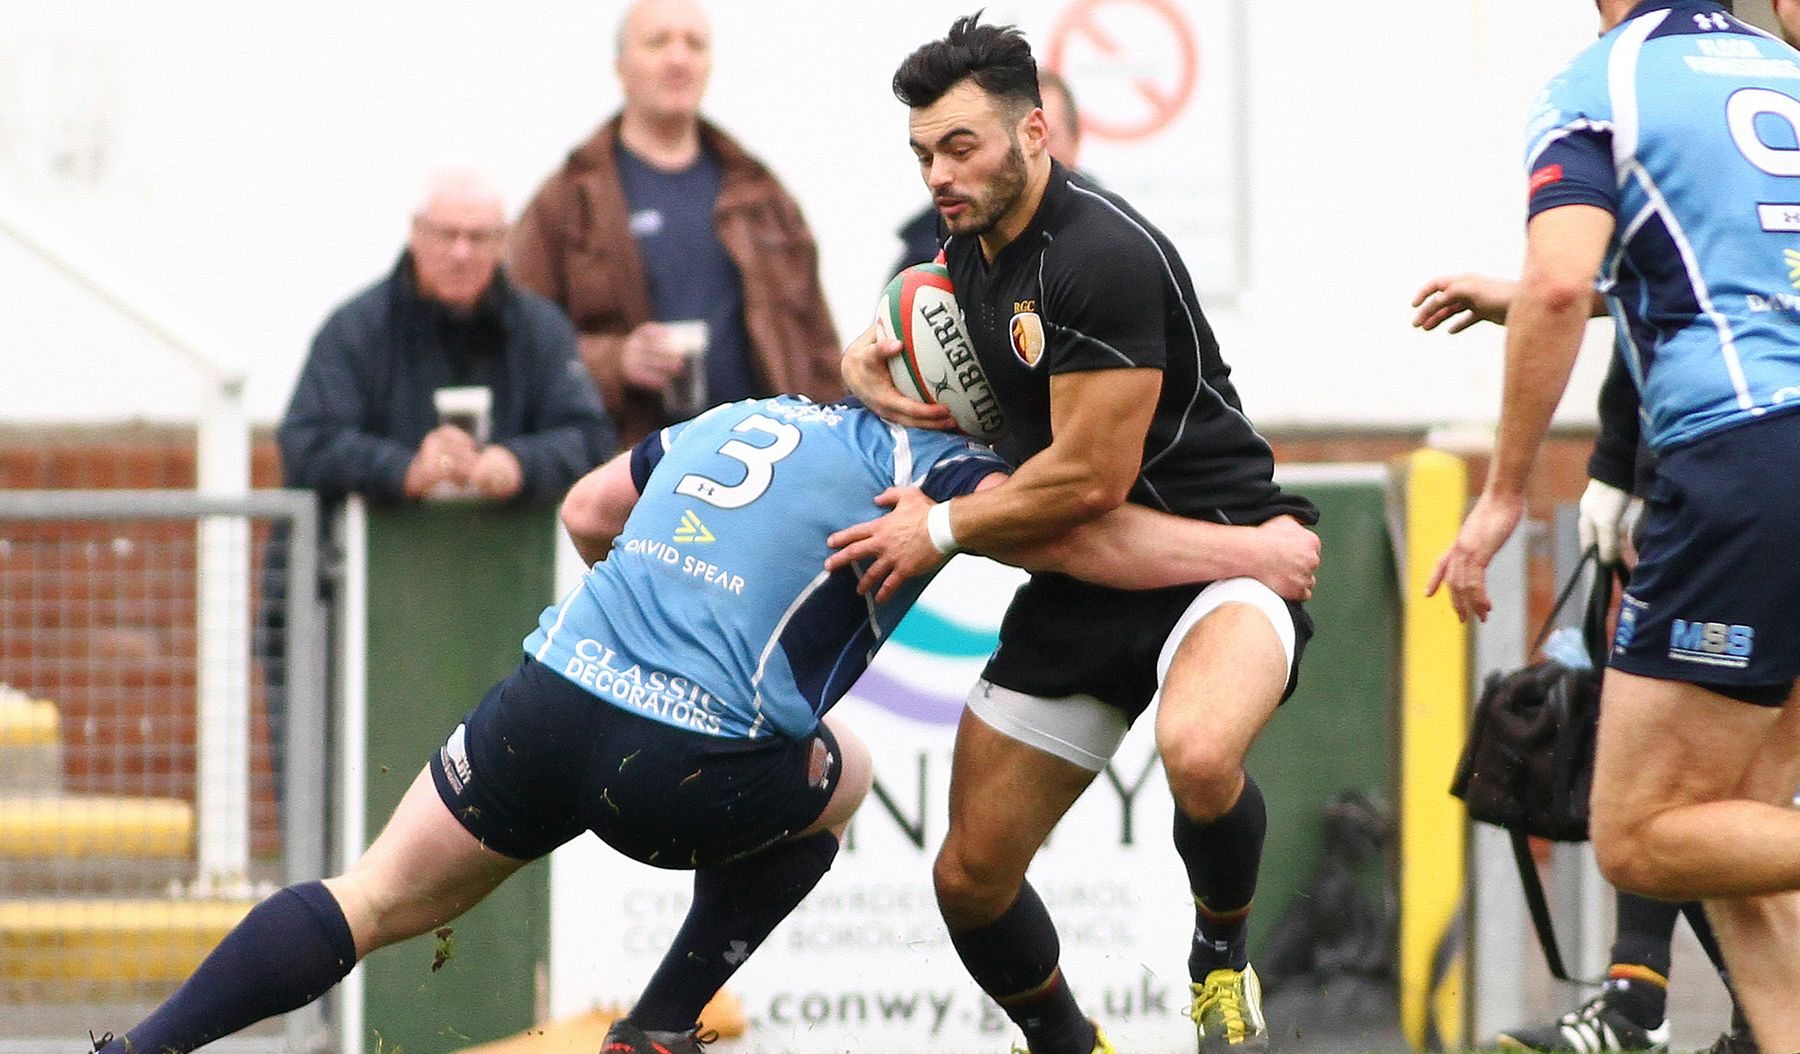 RGC 1404 really going for it